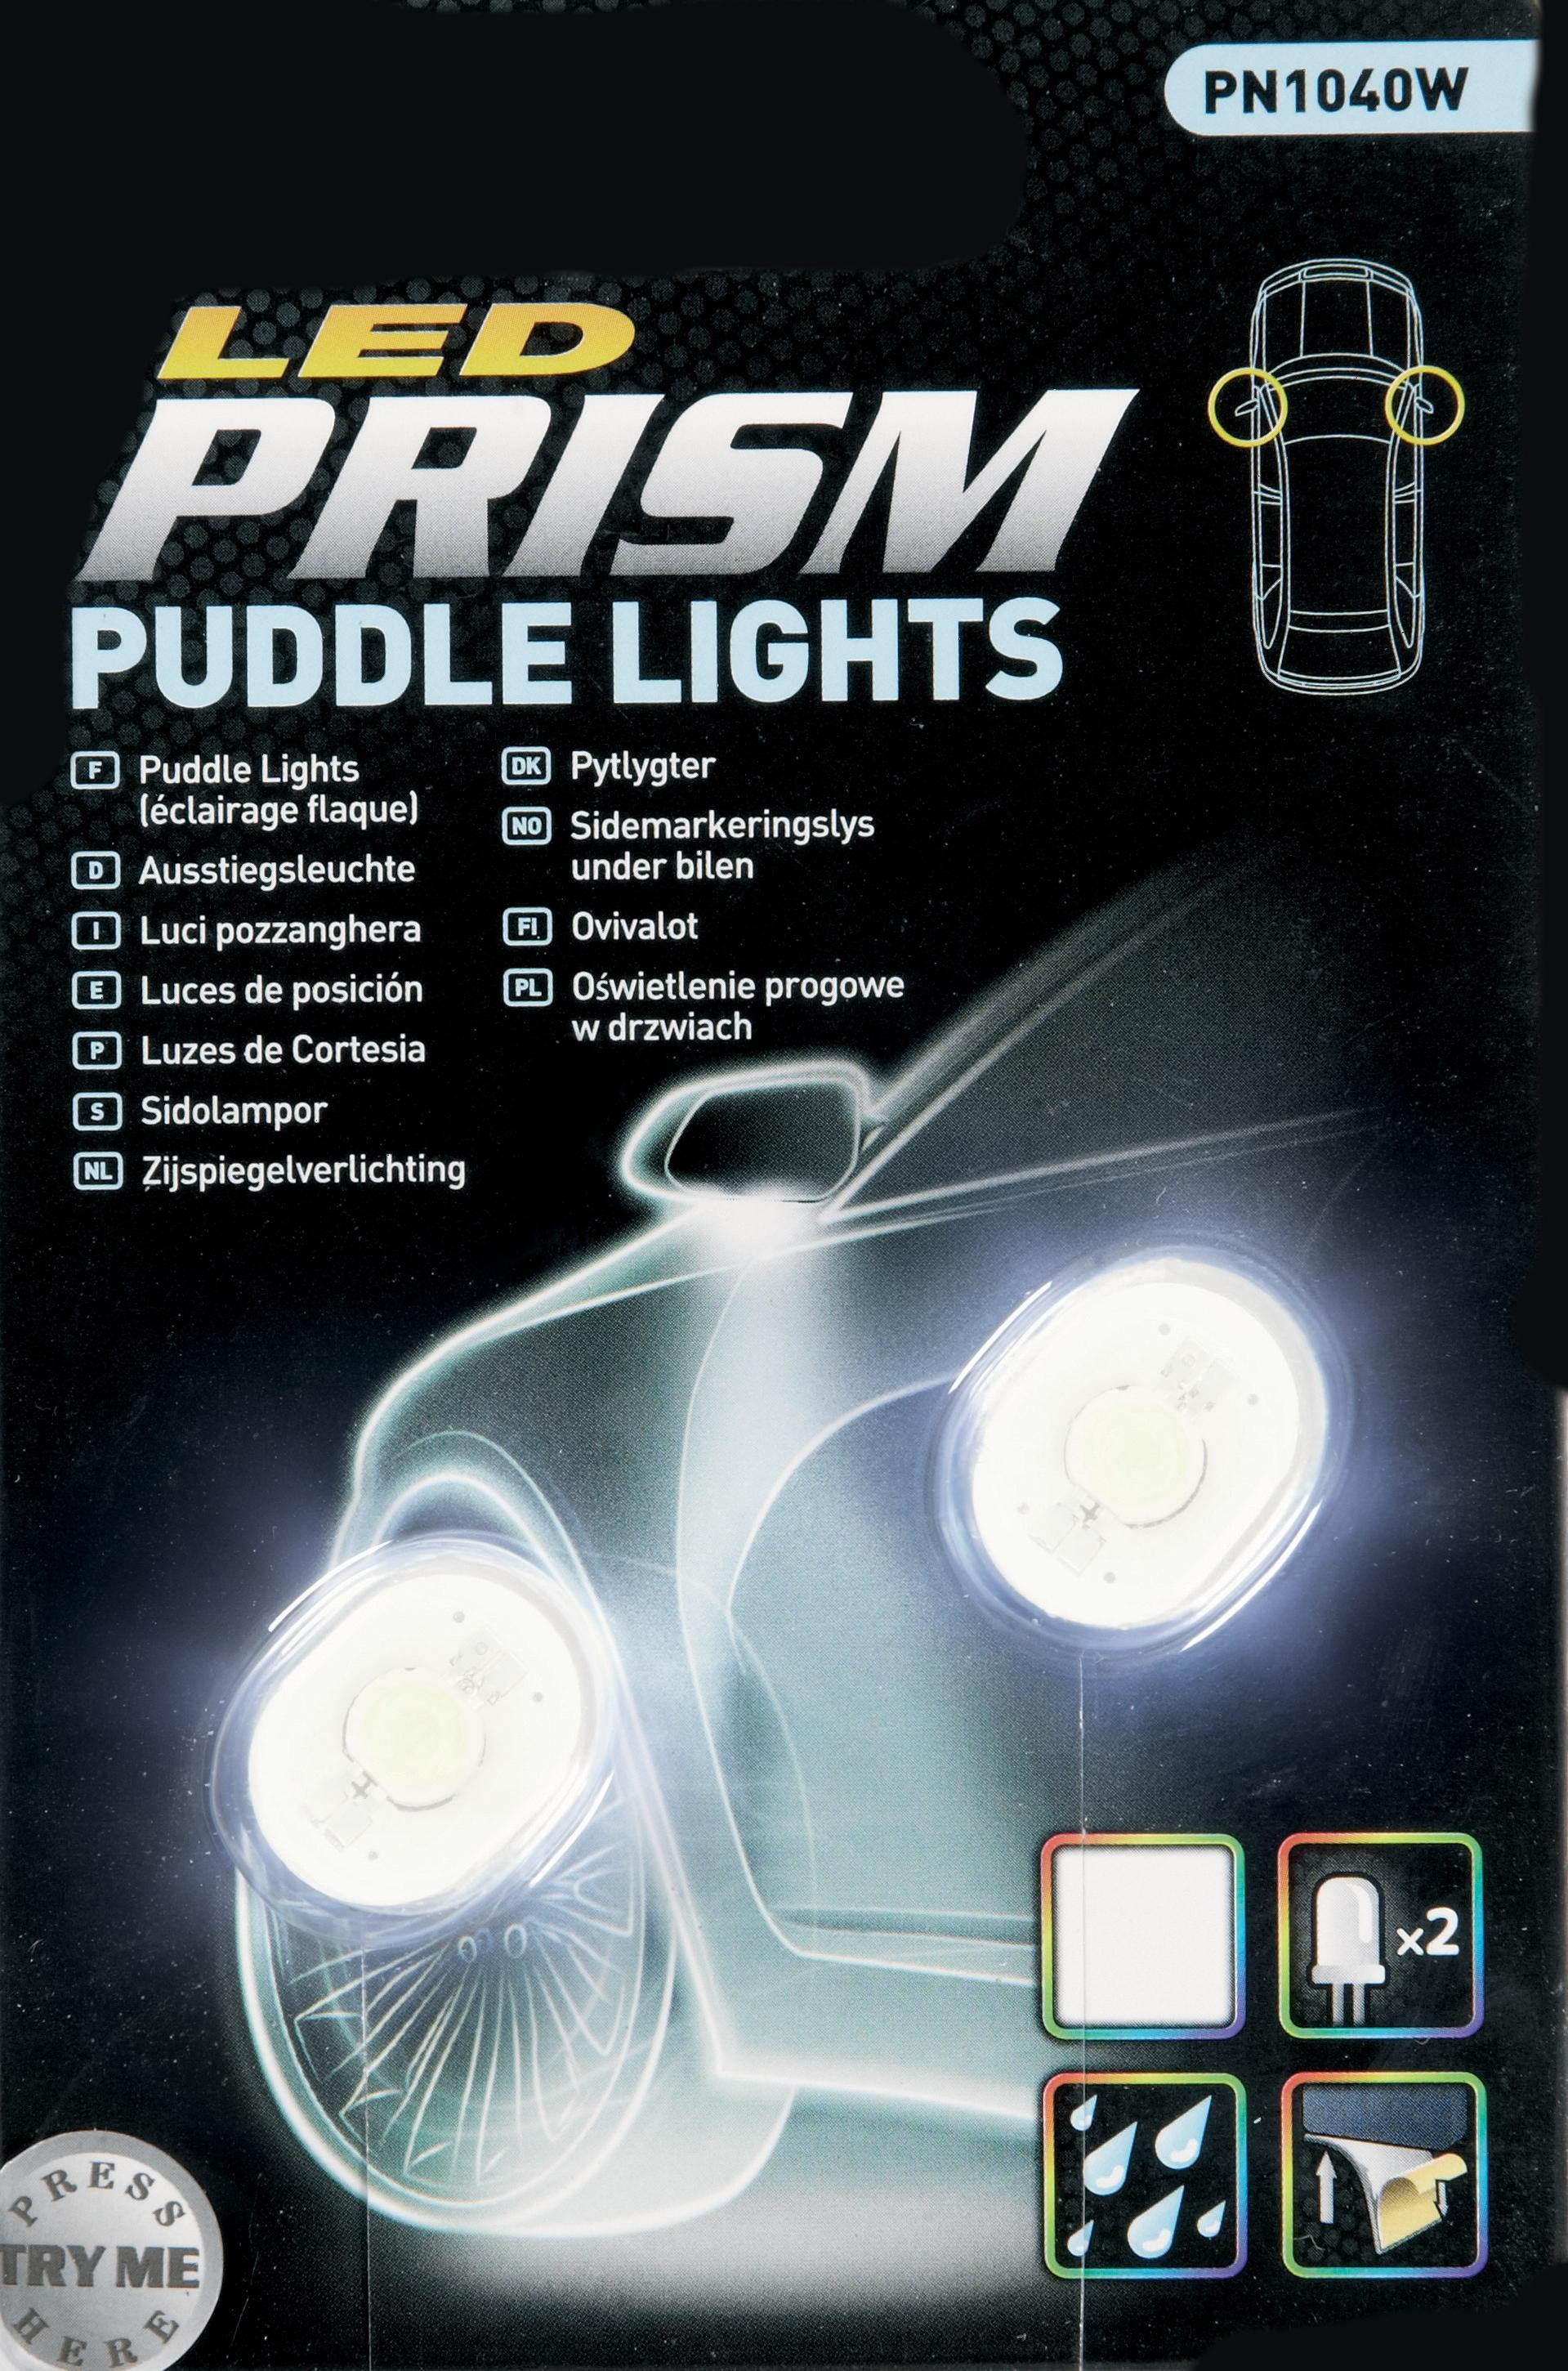 Prism Custom Led Car Door Wing Mirror Puddle Lights Lamps